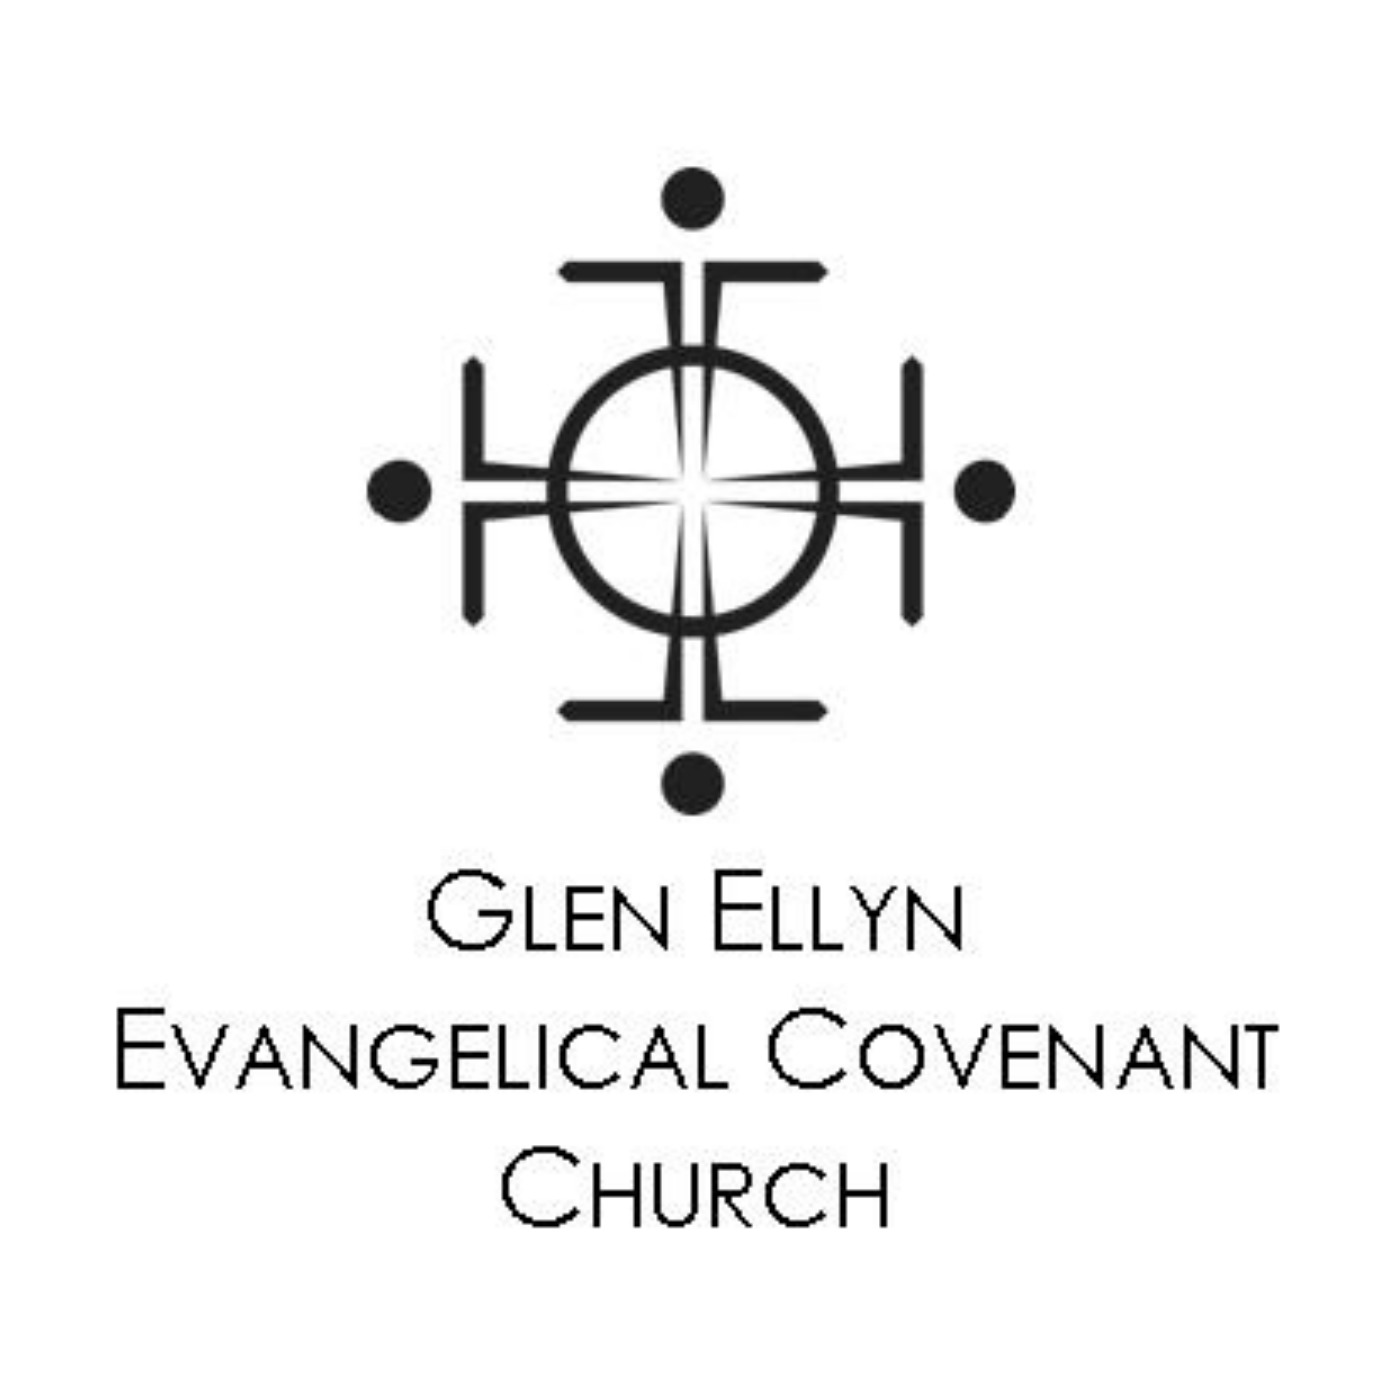 Glen Ellyn Evangelical Covenant Church